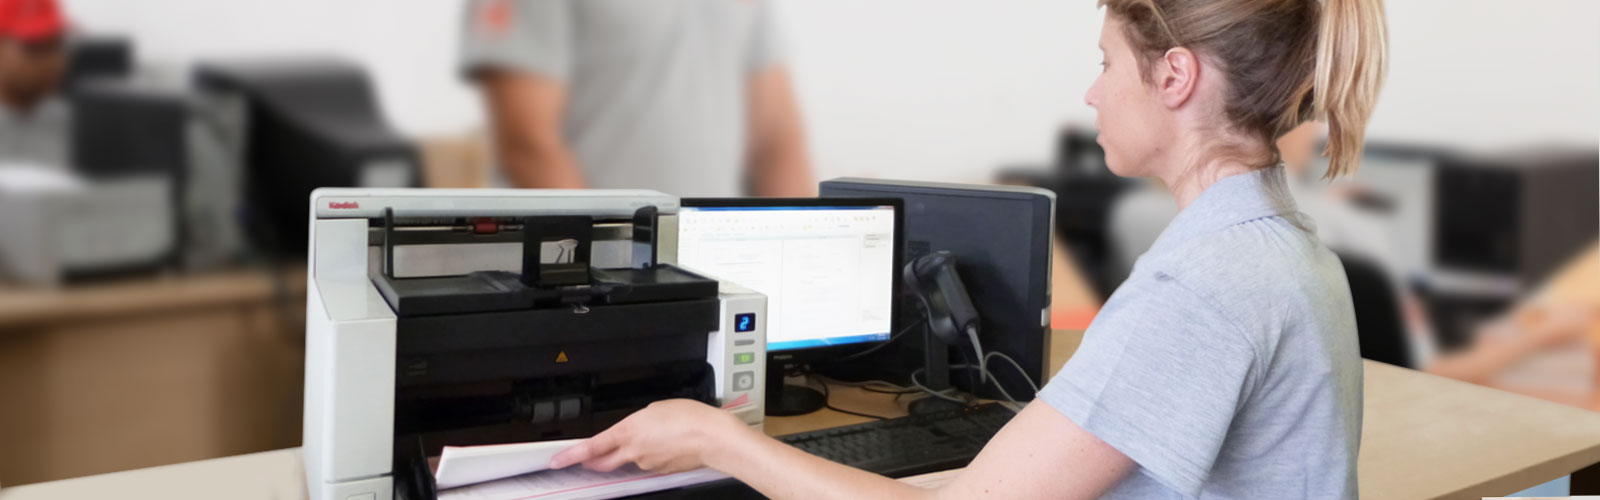 Records management staff scanning documents